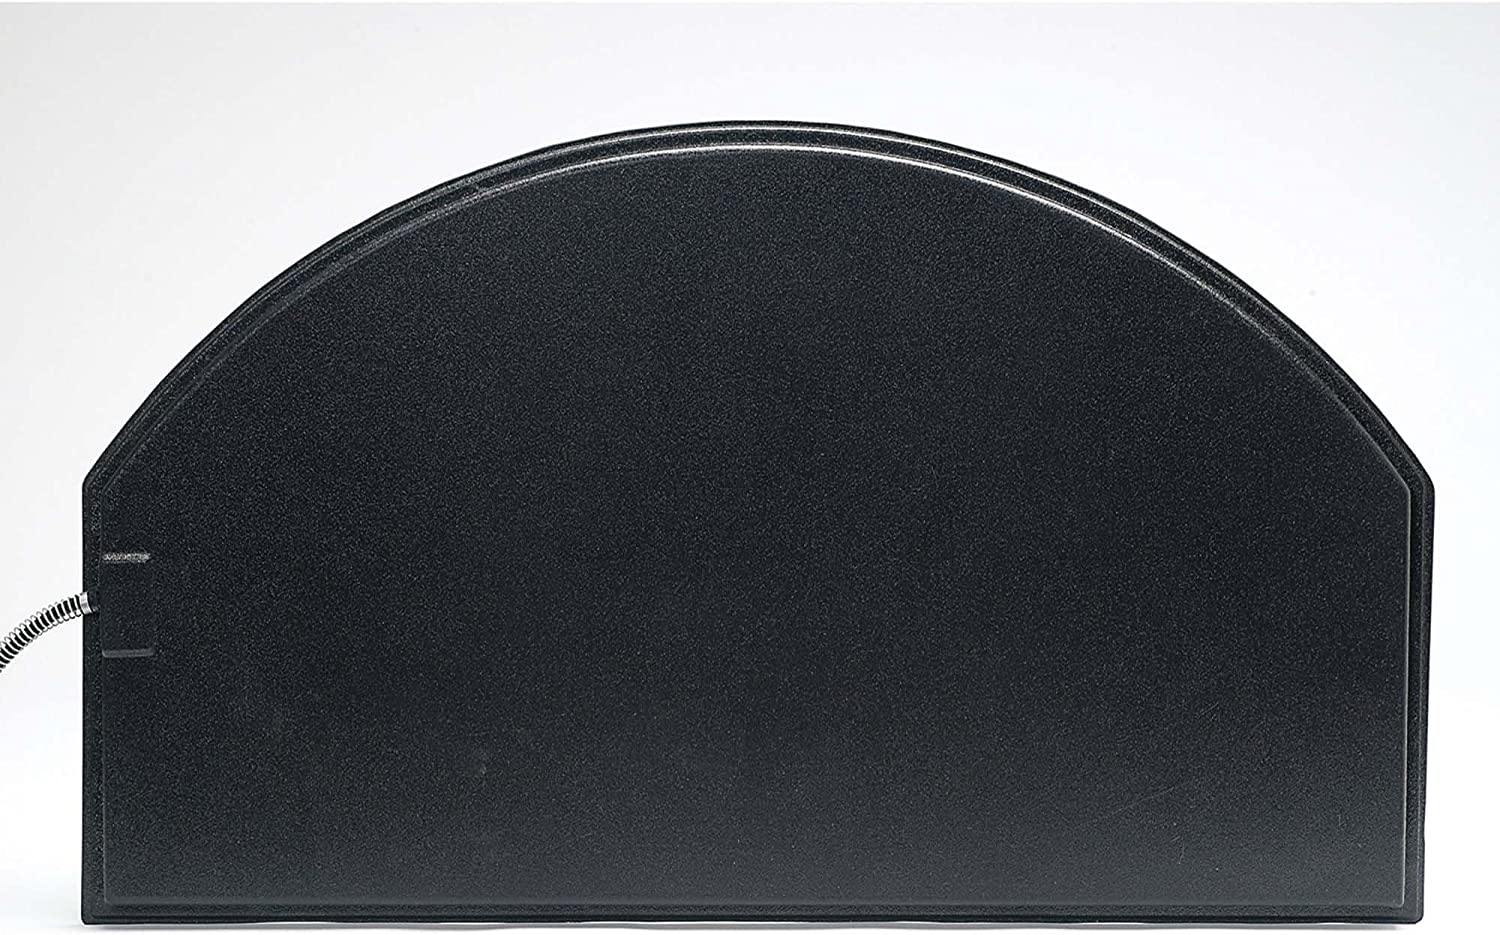 """K&H Pet Products Lectro-Kennel Igloo Style Outdoor Heated Pad Medium Black 14.5"""" x 24"""" 60W (Igloo house not included)"""